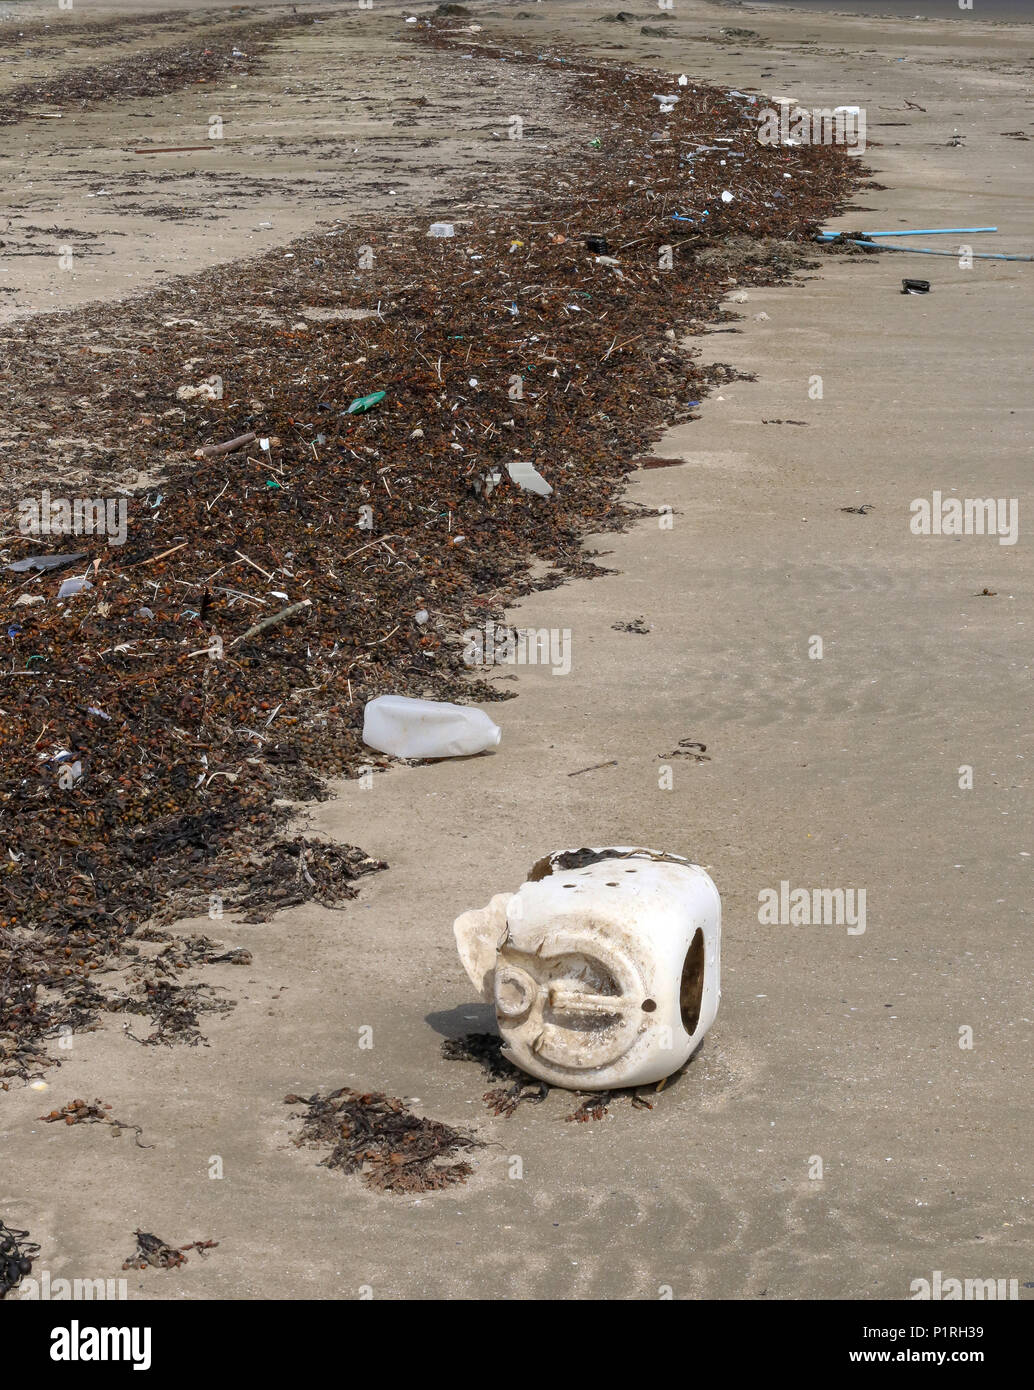 Plastic on UK beach. Seaweed is littered with discarded plastic and other rubbish lies on beach. - Stock Image